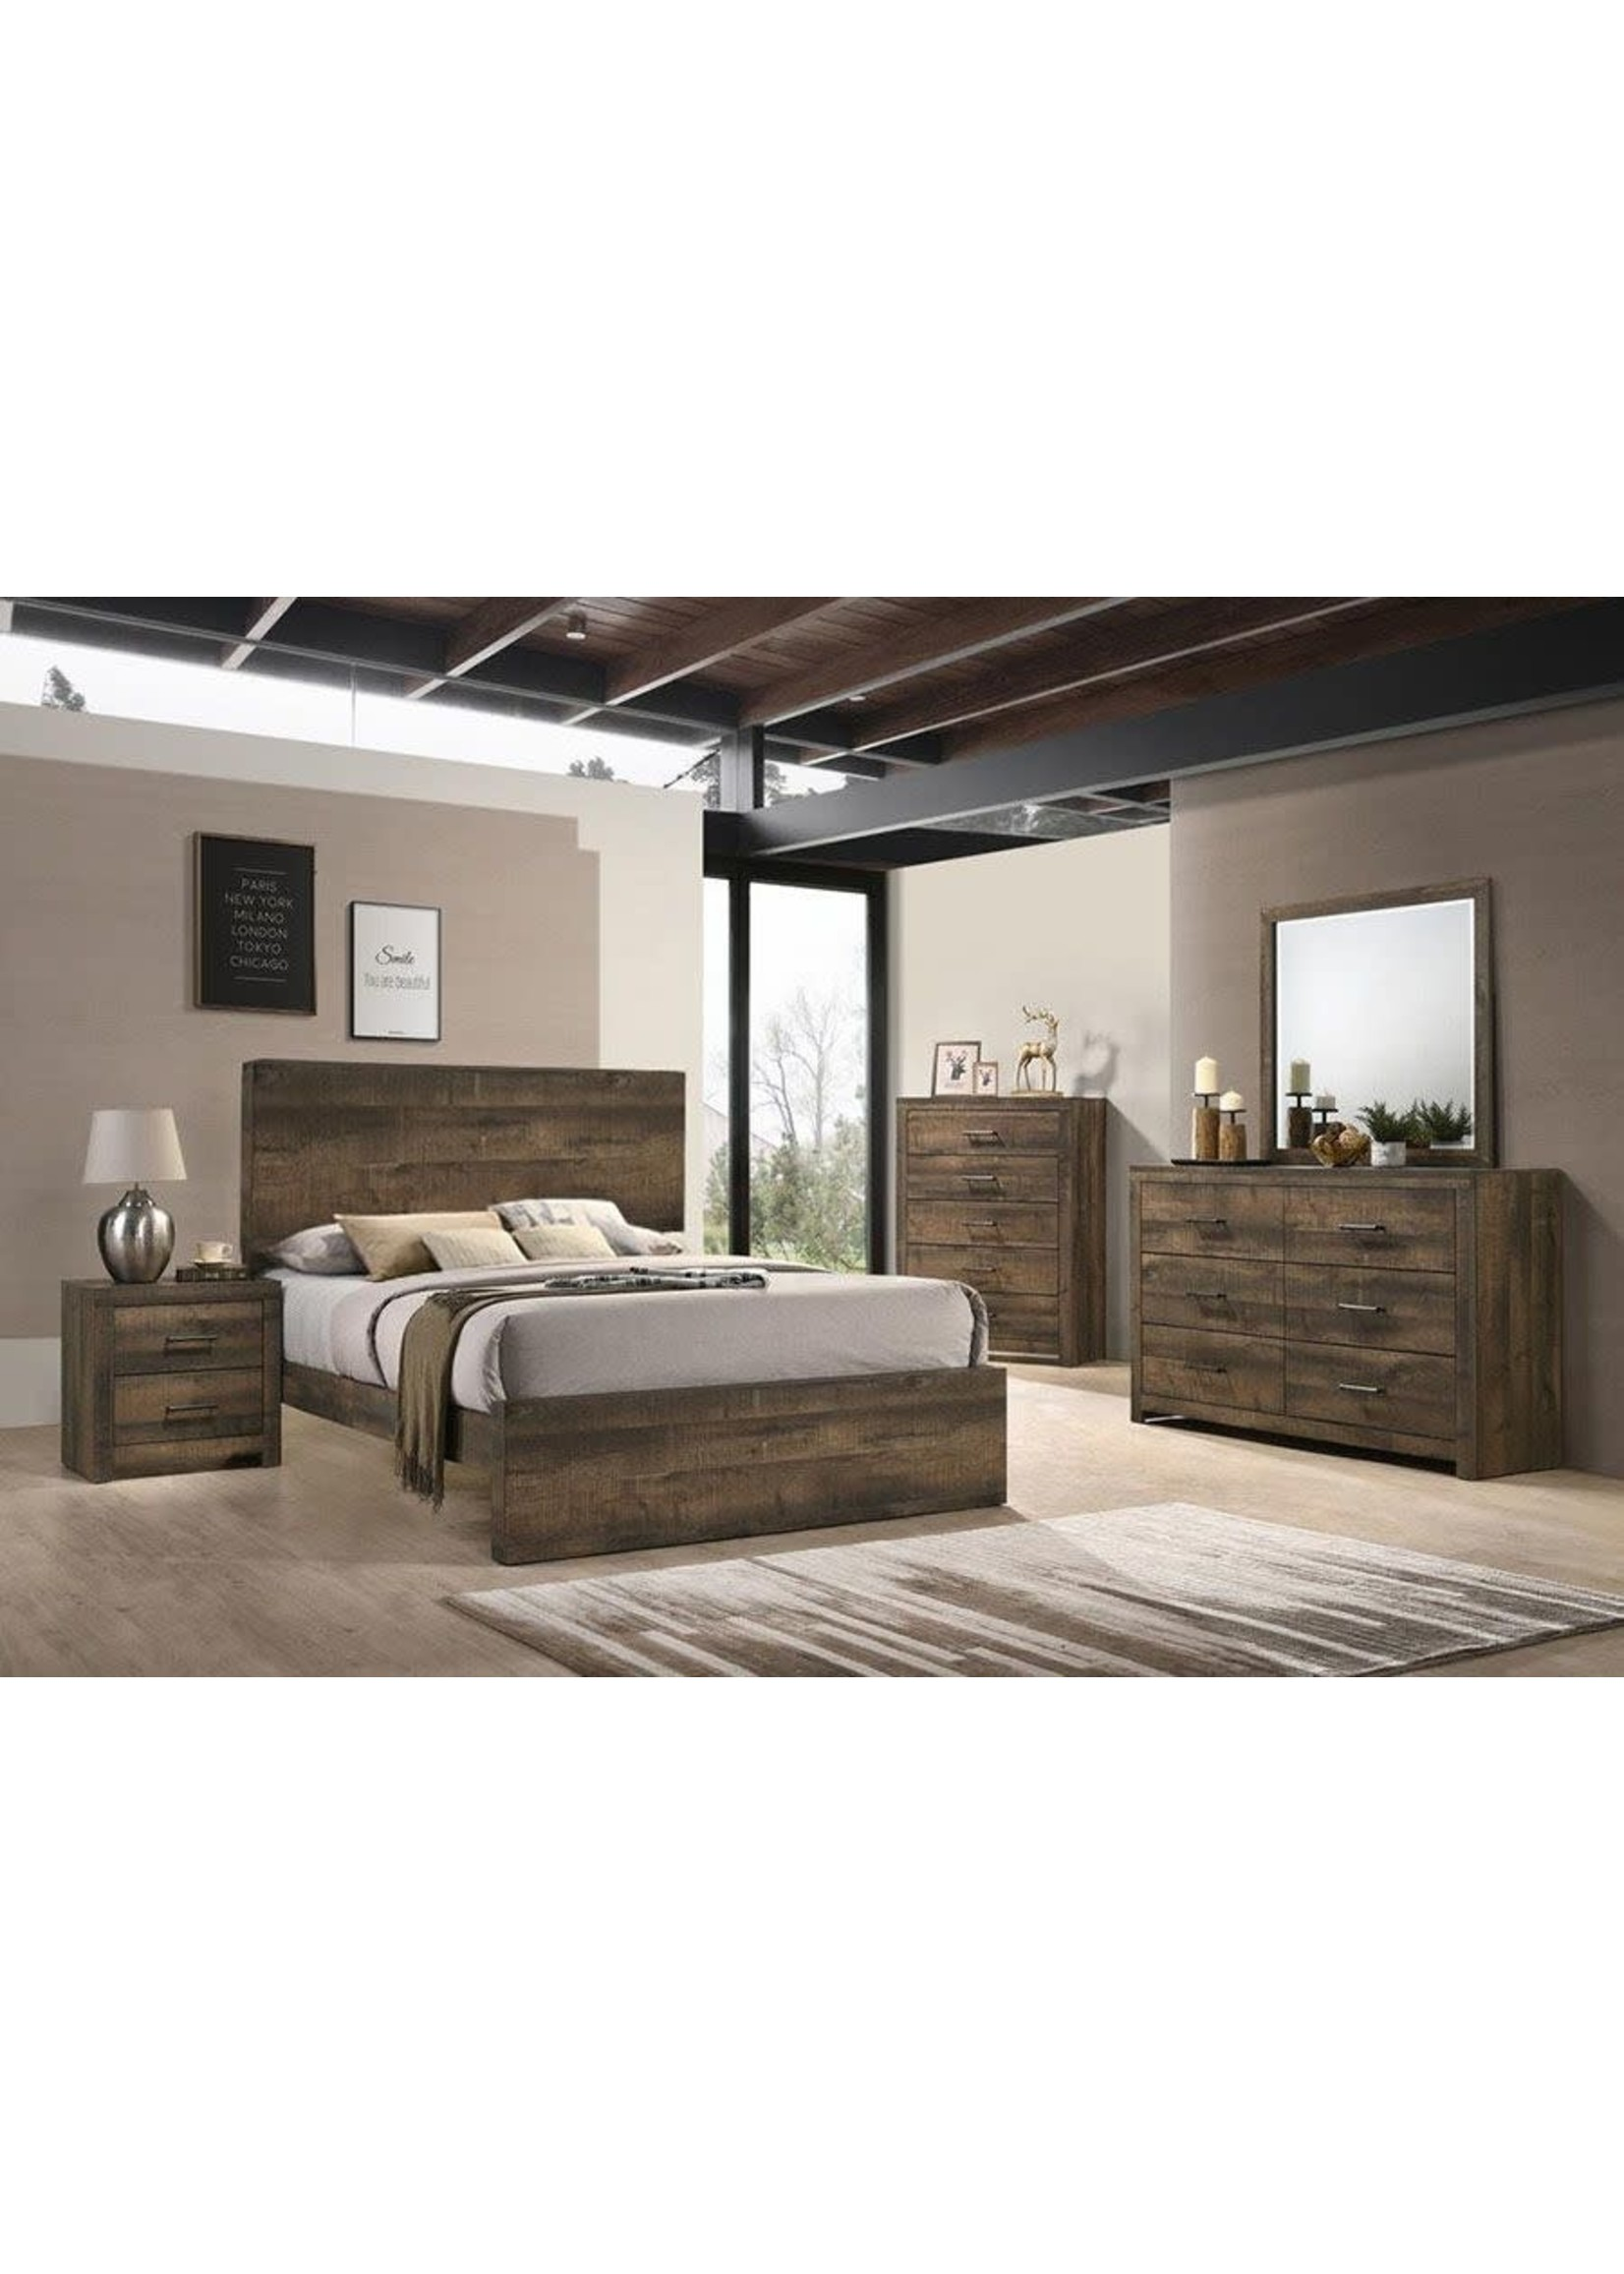 ELEMENTS BY500KB 6/6 PANEL BED BAILEY DRIFTWOOD